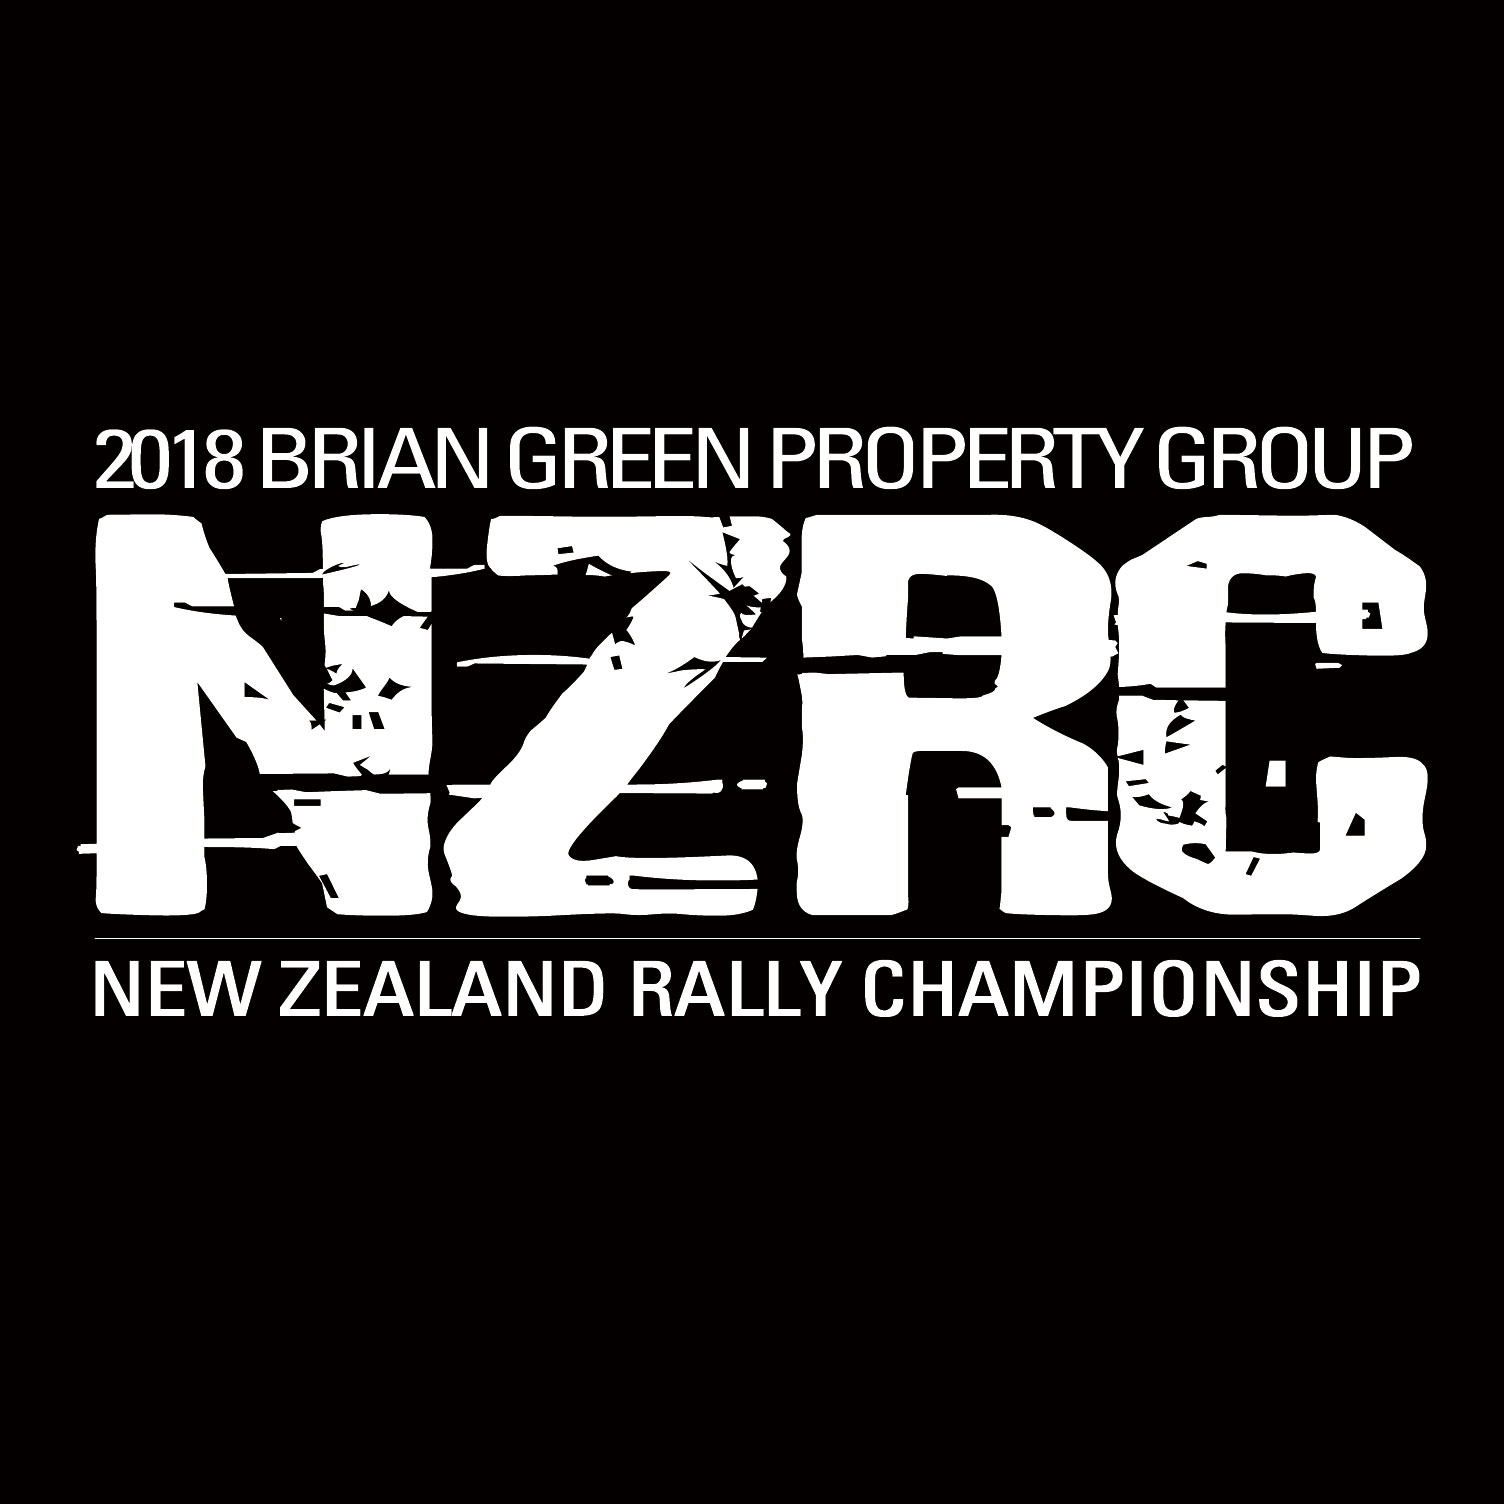 Emma wins challenging Canterbury Rally | :: Brian Green Property Group New Zealand Rally Championship ::